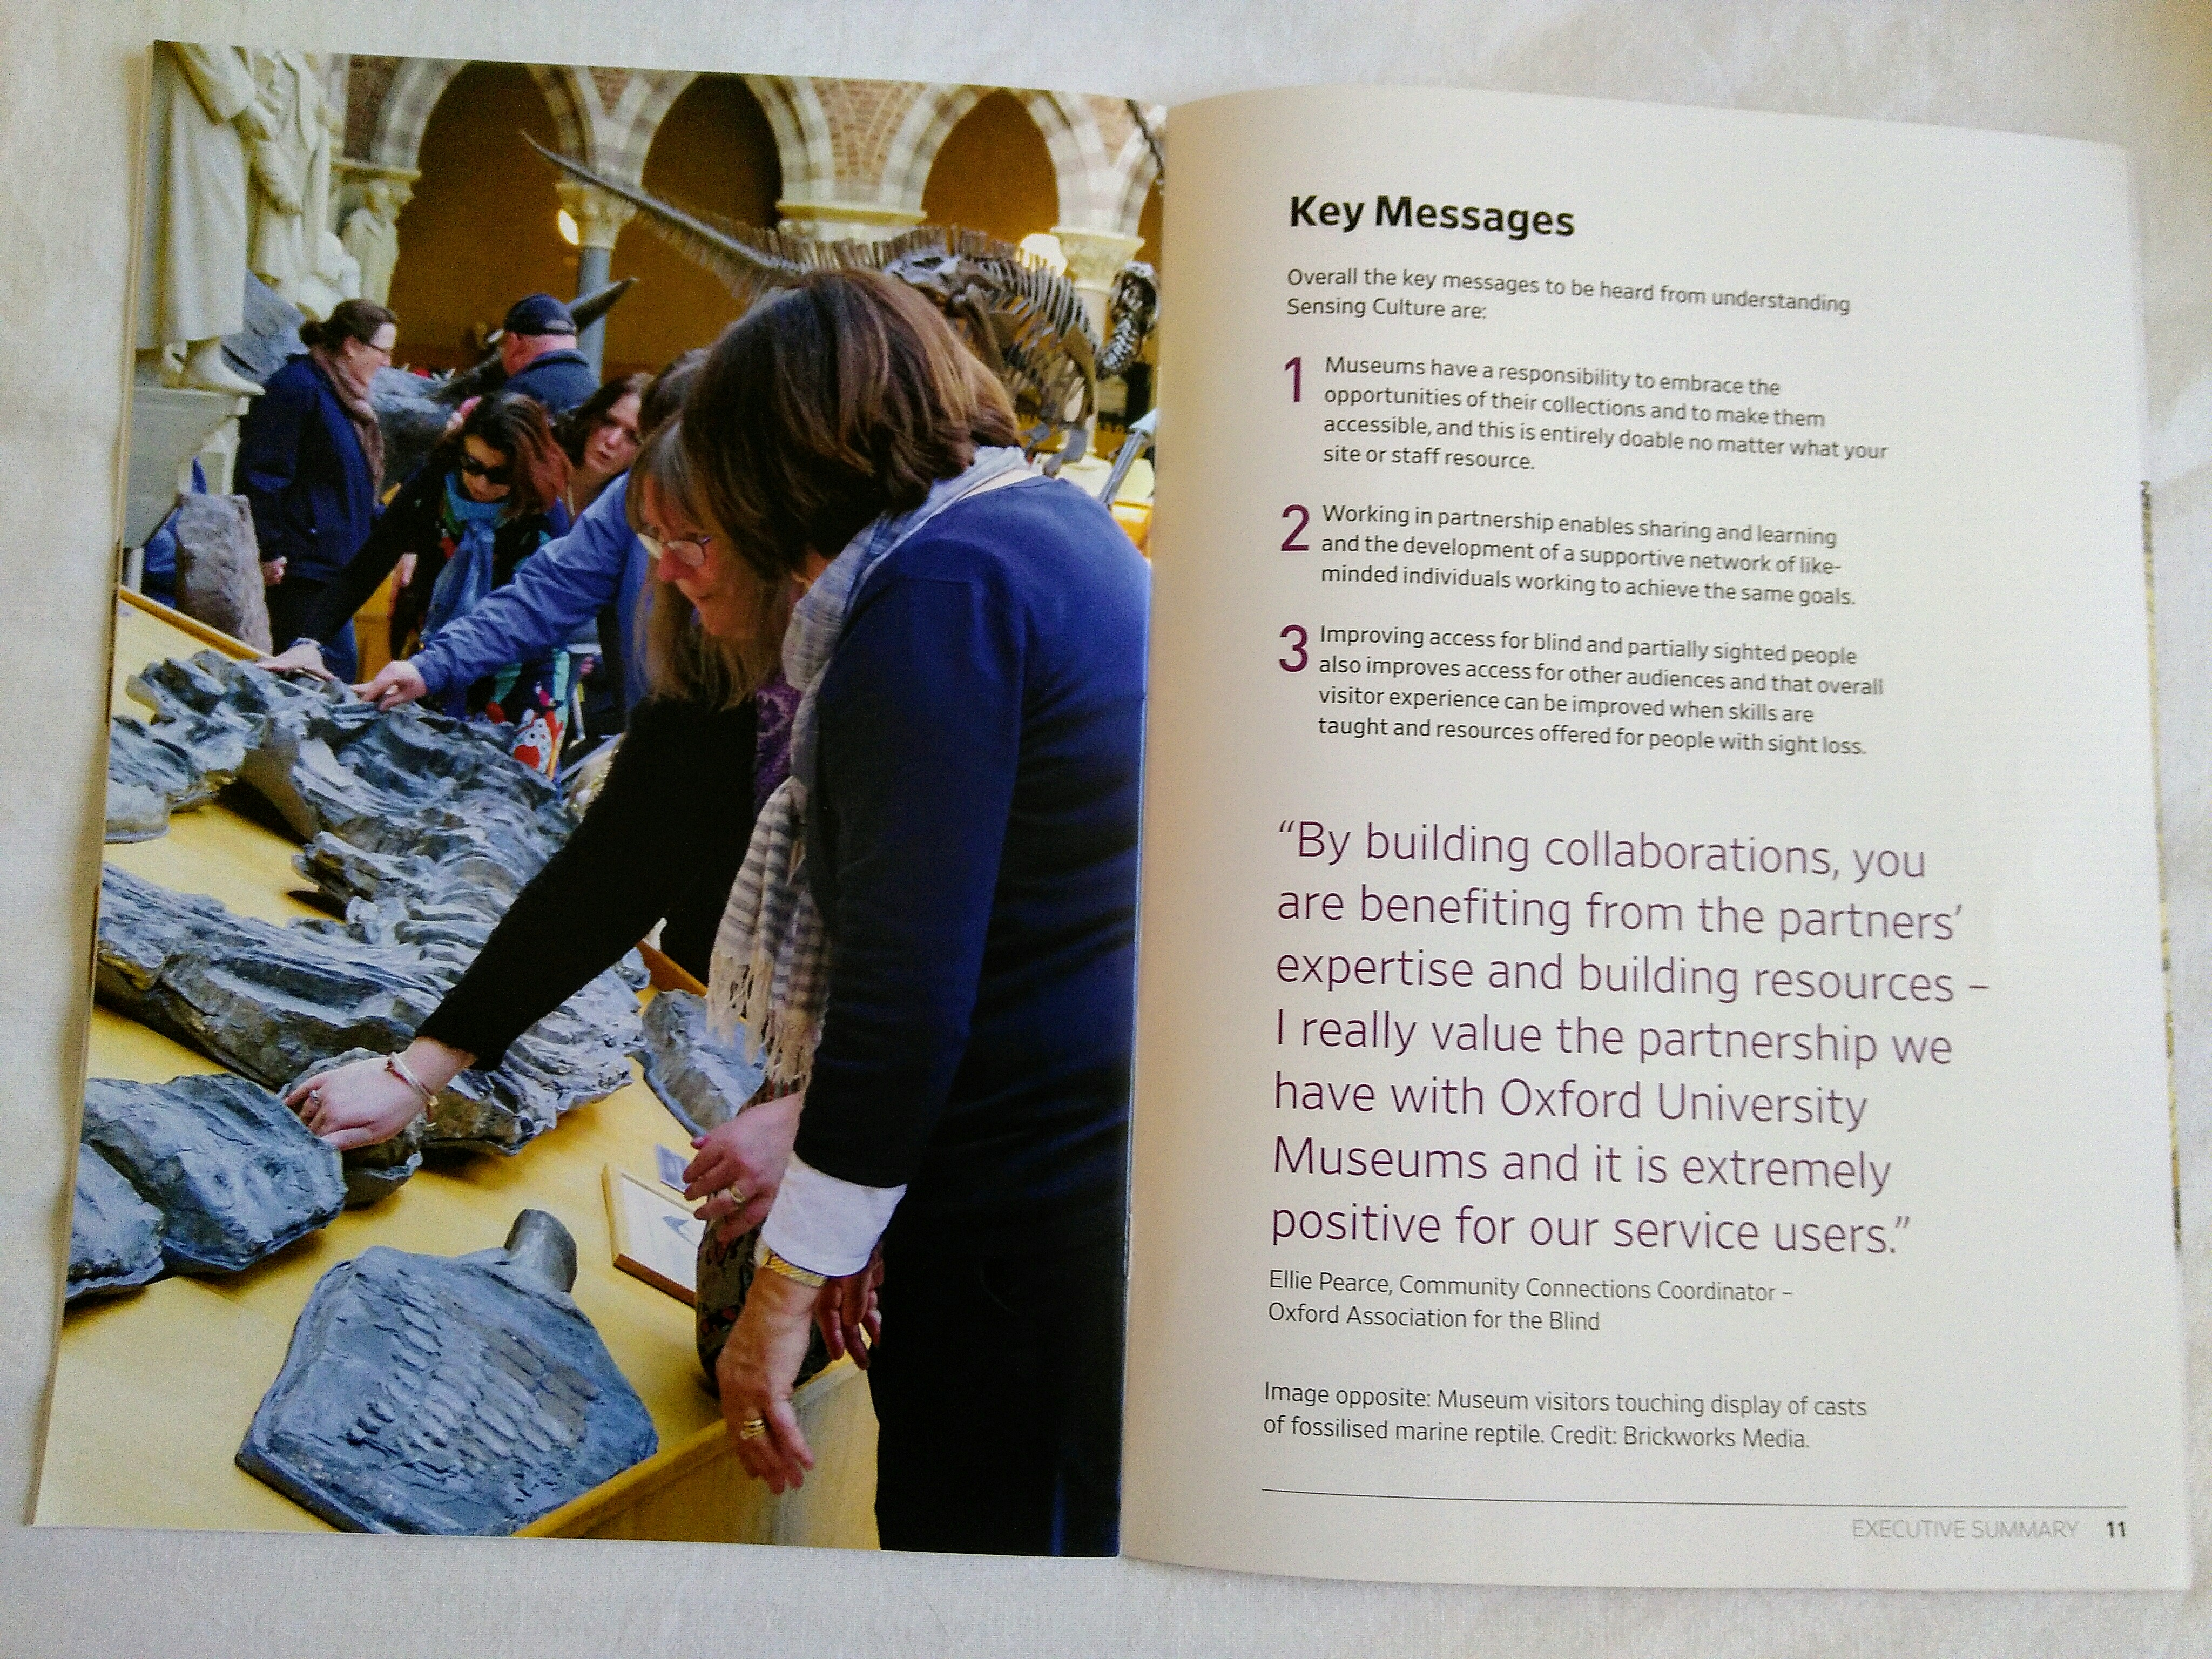 Example printed material project evaluation report key messages.